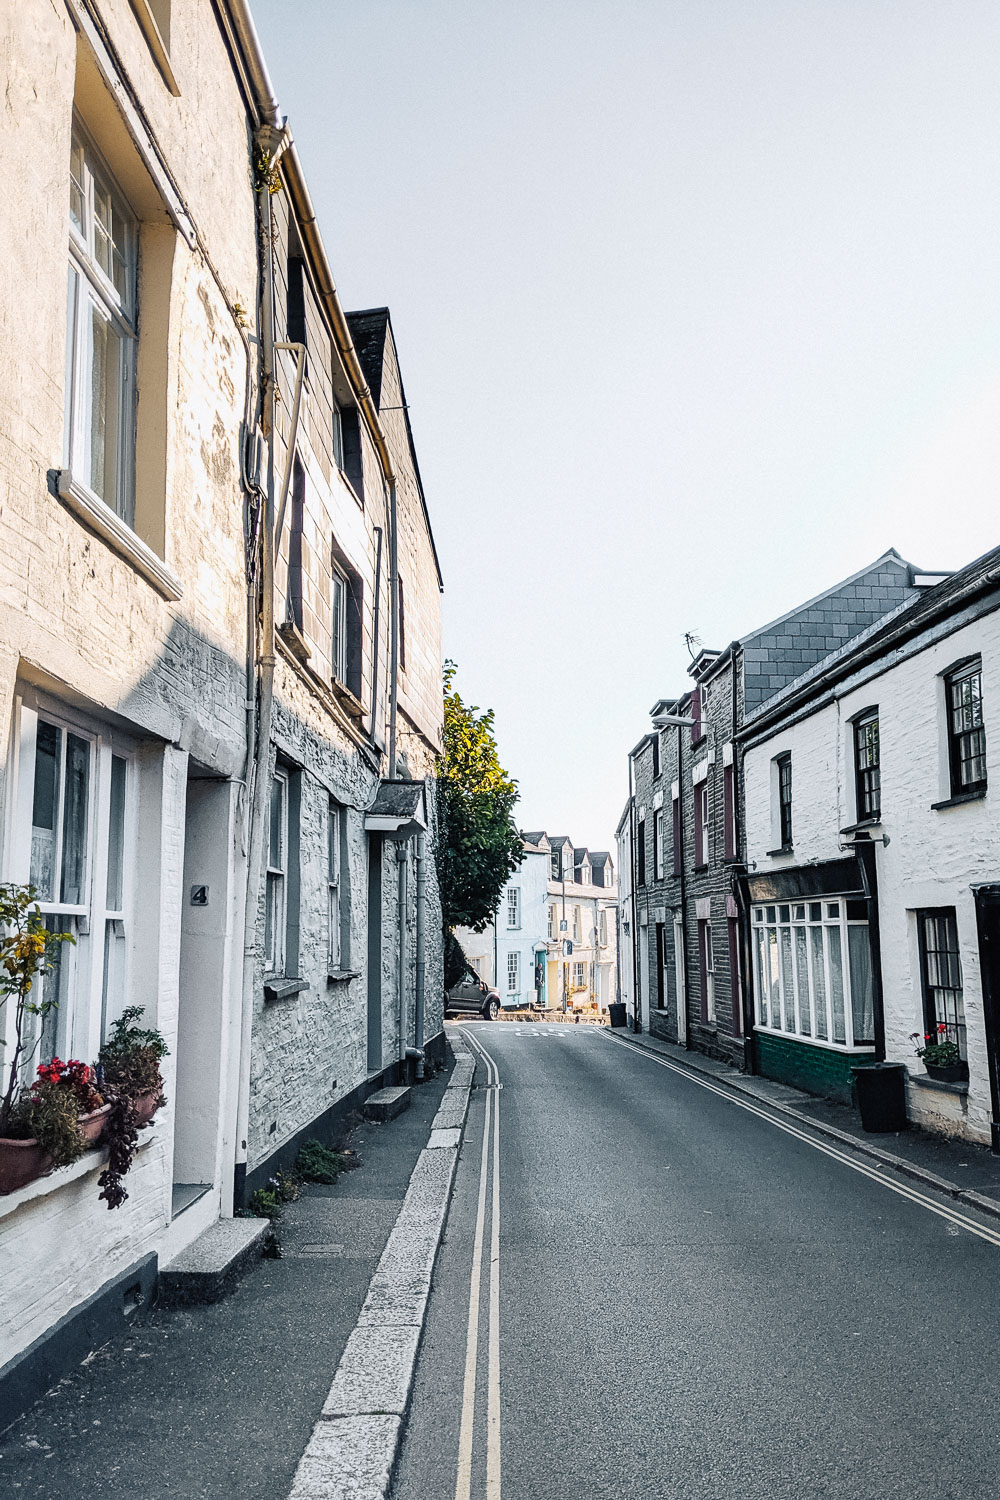 The picturesque town centre of Padstow in North Cornwall, United Kingdom